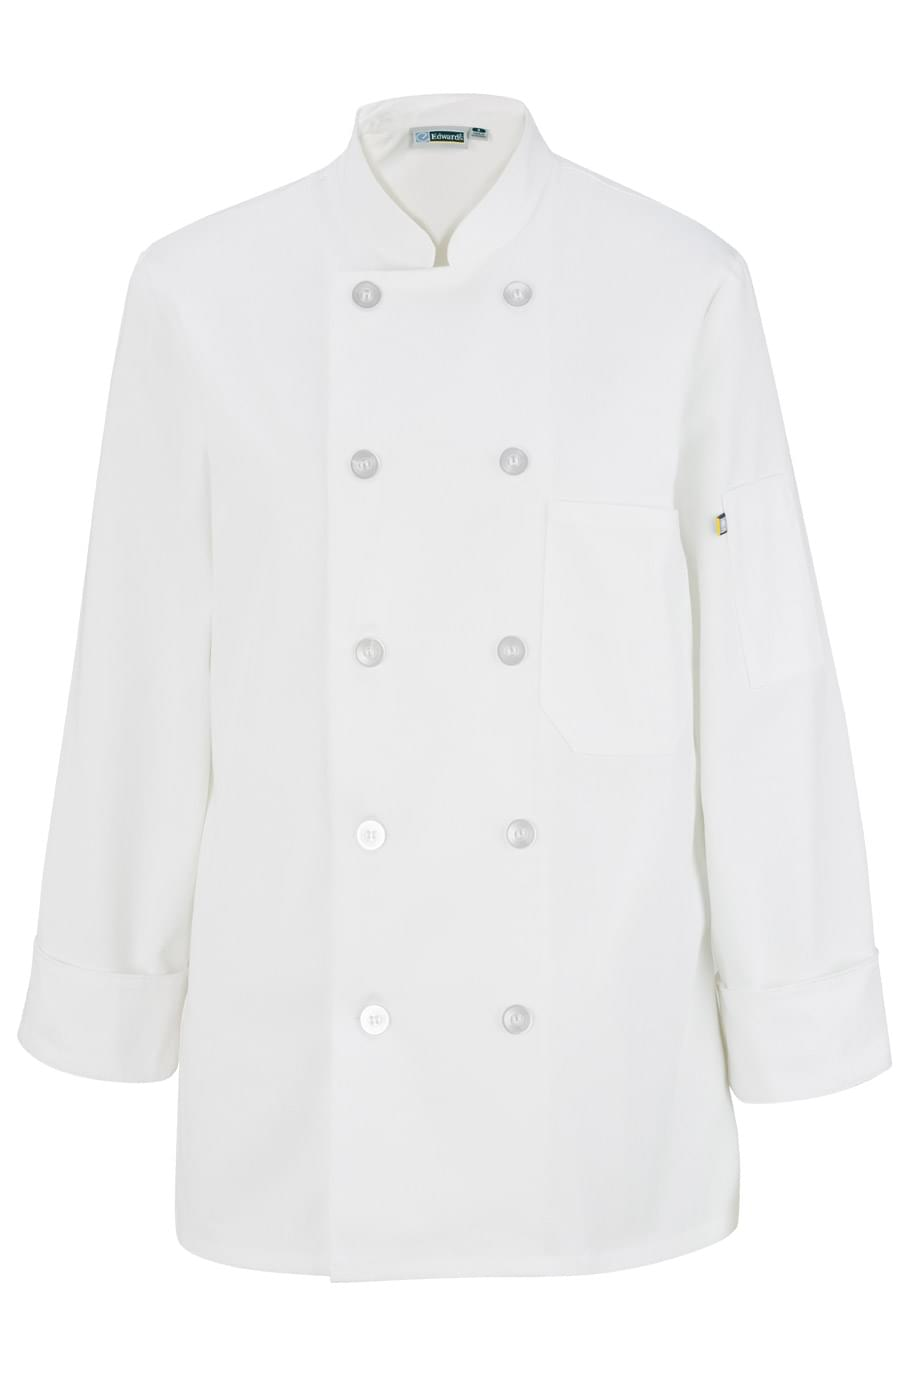 CLASSIC CHEF COAT - 10-BUTTON